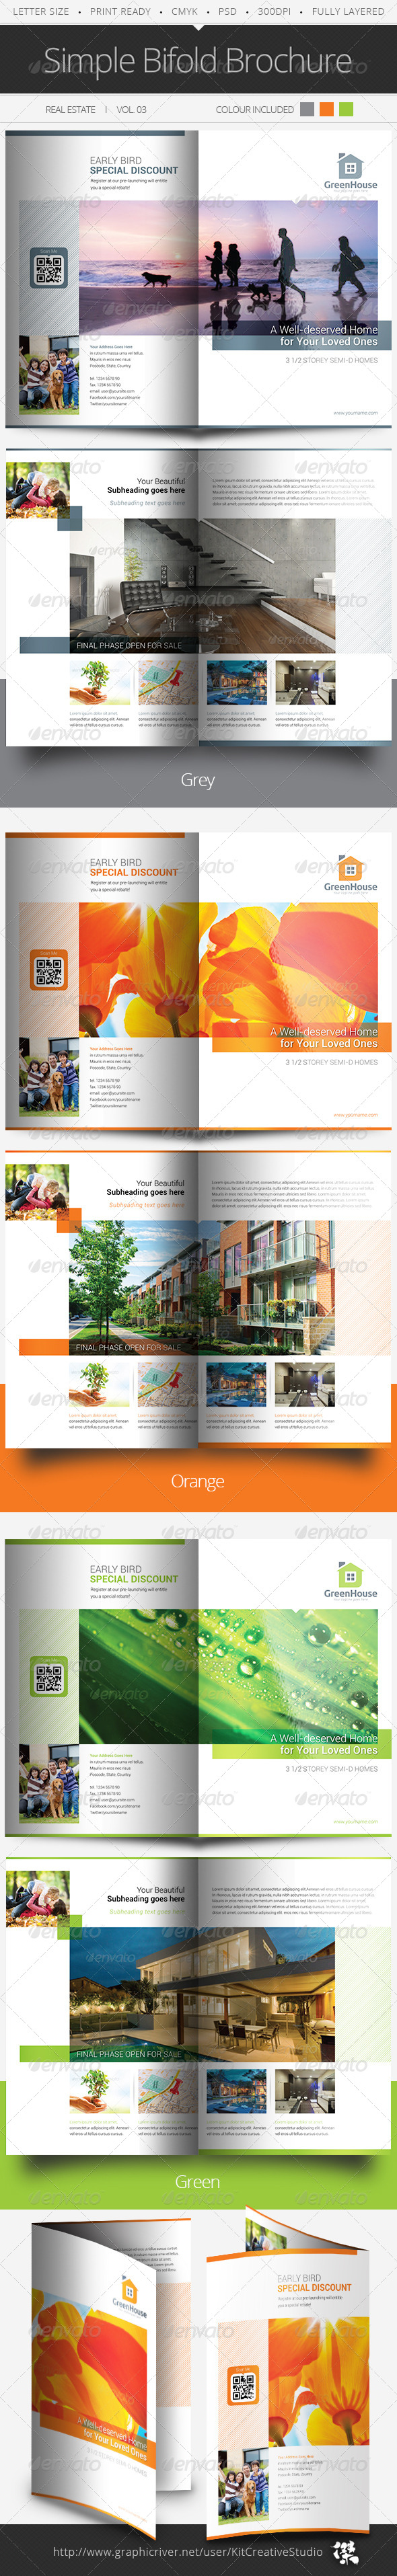 Simple Bifold Brochure Vol.03 - Informational Brochures